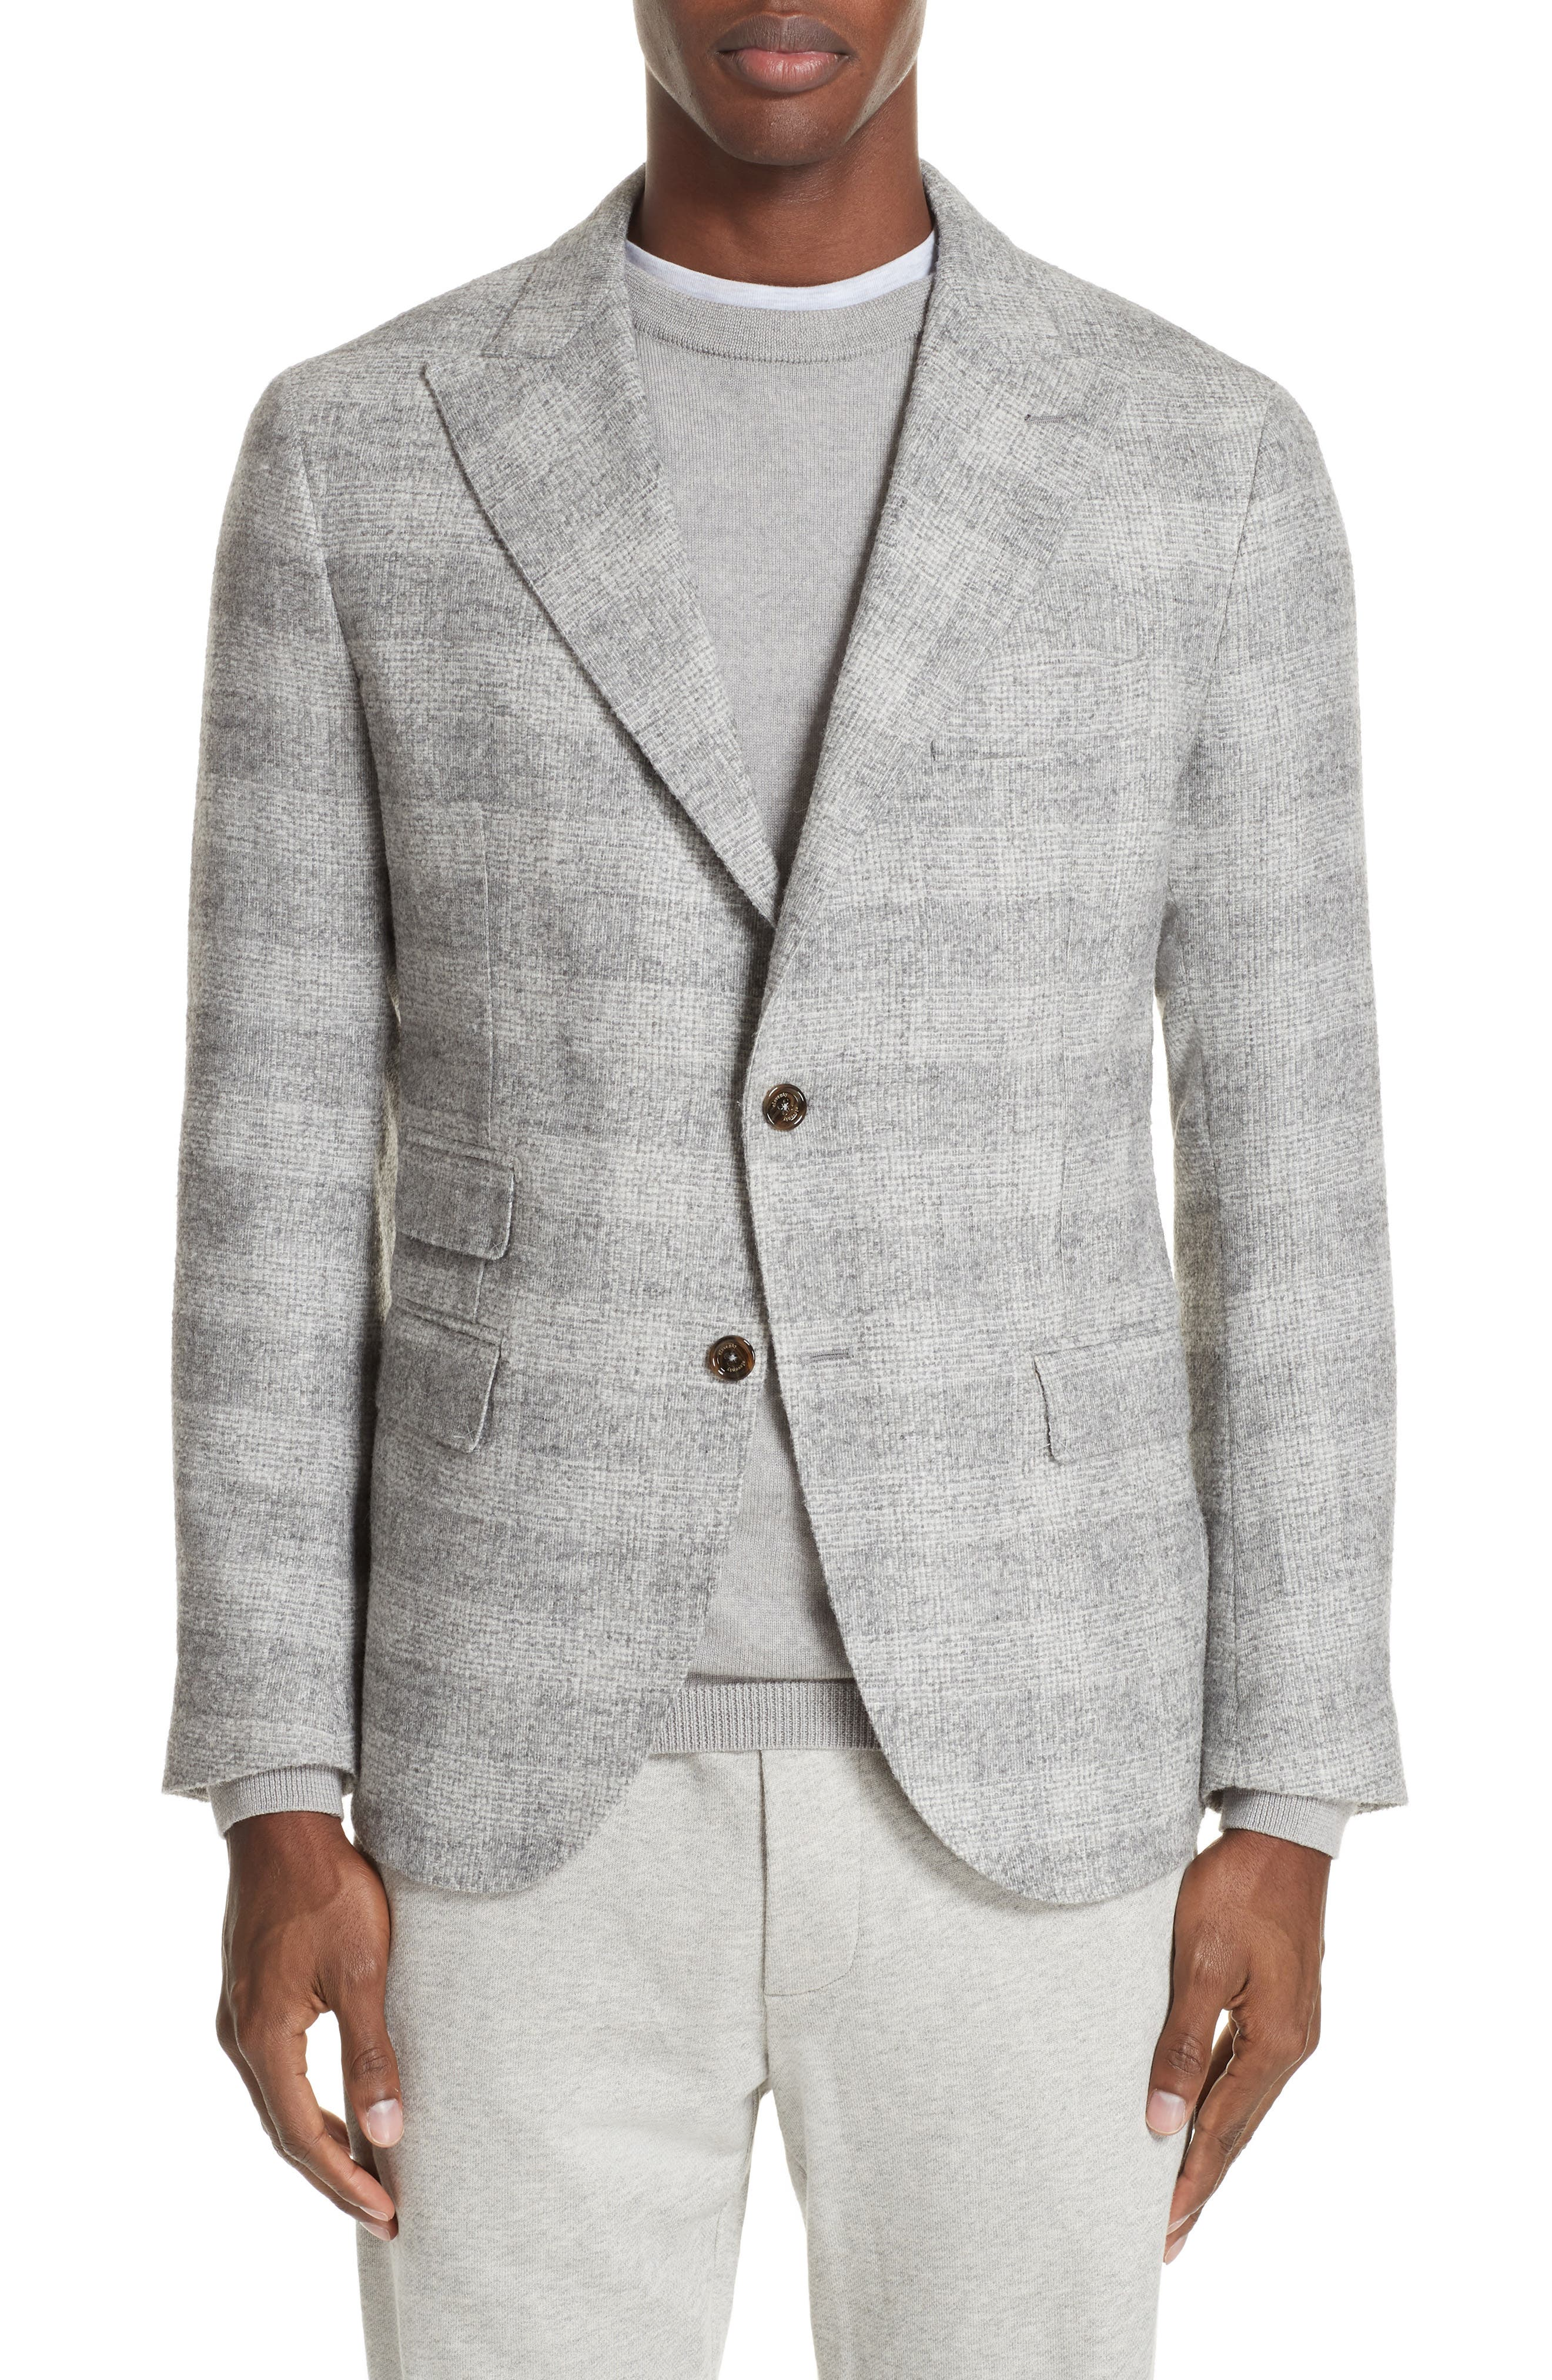 Trim Fit Houndstooth Alpaca Wool Blend Sport Coat,                             Main thumbnail 1, color,                             GREY